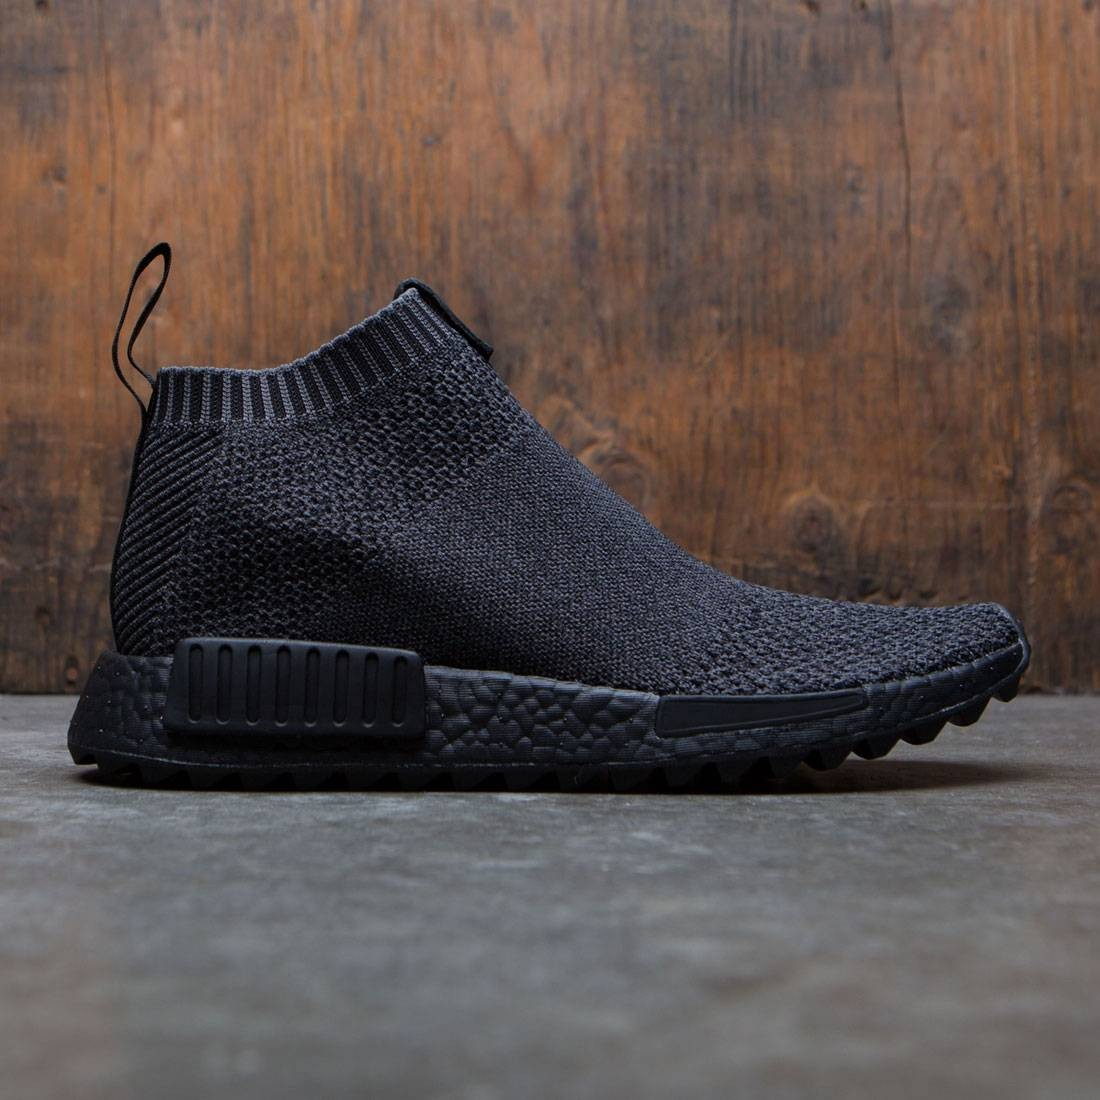 official photos 2fb23 19e1e Adidas Consortium x The Good Will Out Men NMD CS1 Primeknit (black / core  black)